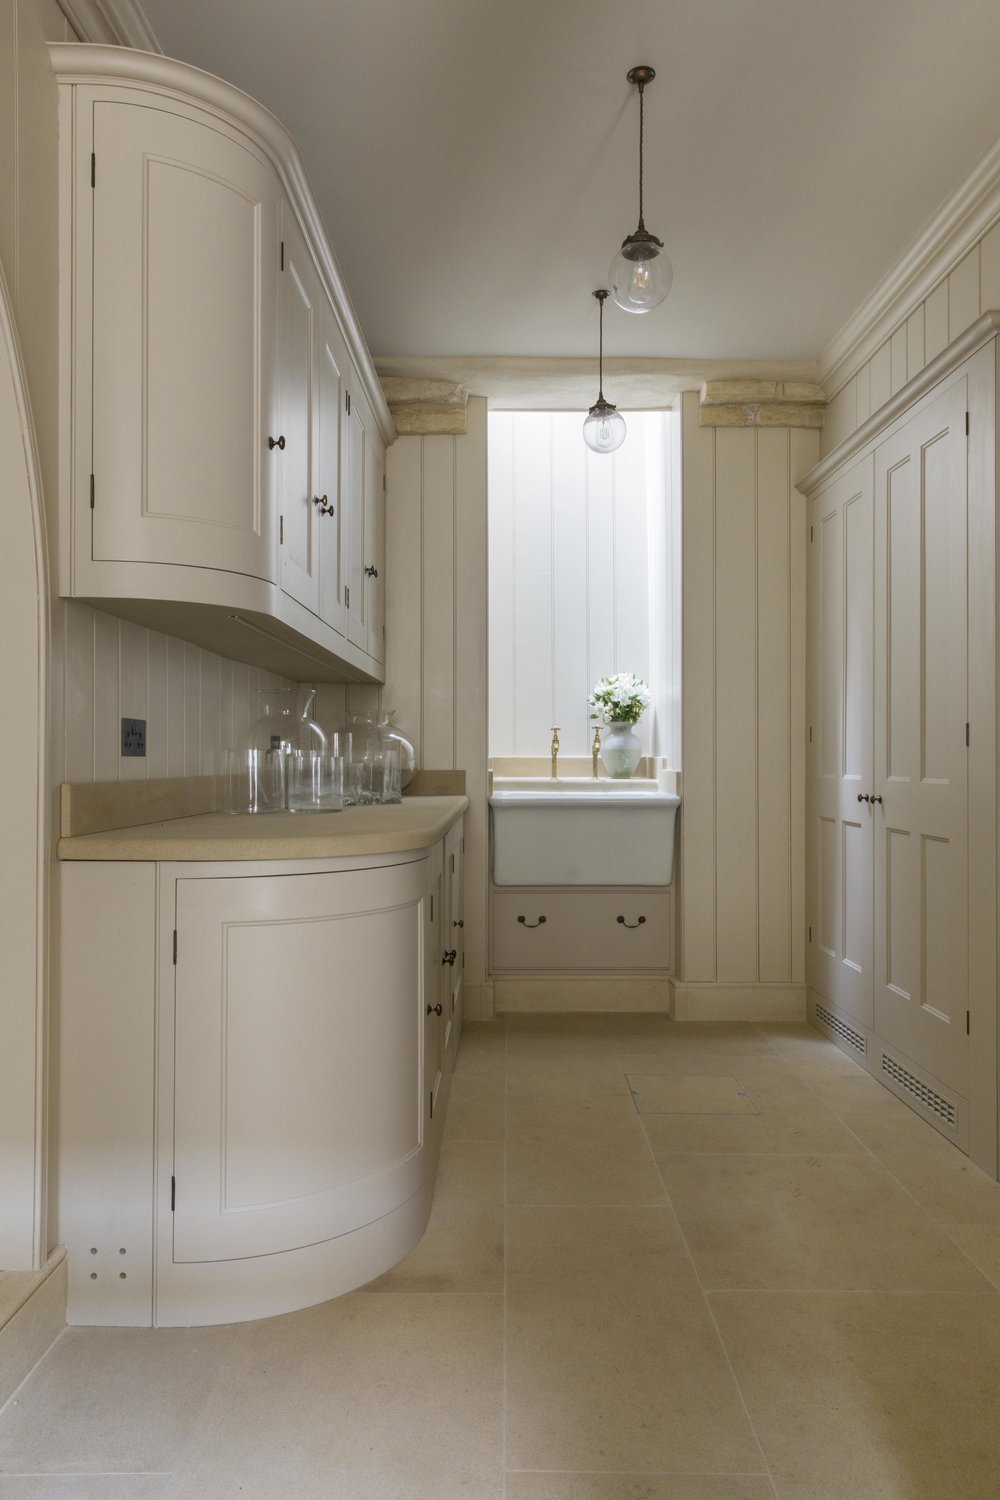 Plain and understated cabinetry bring elegance and simplicity to the utility room.